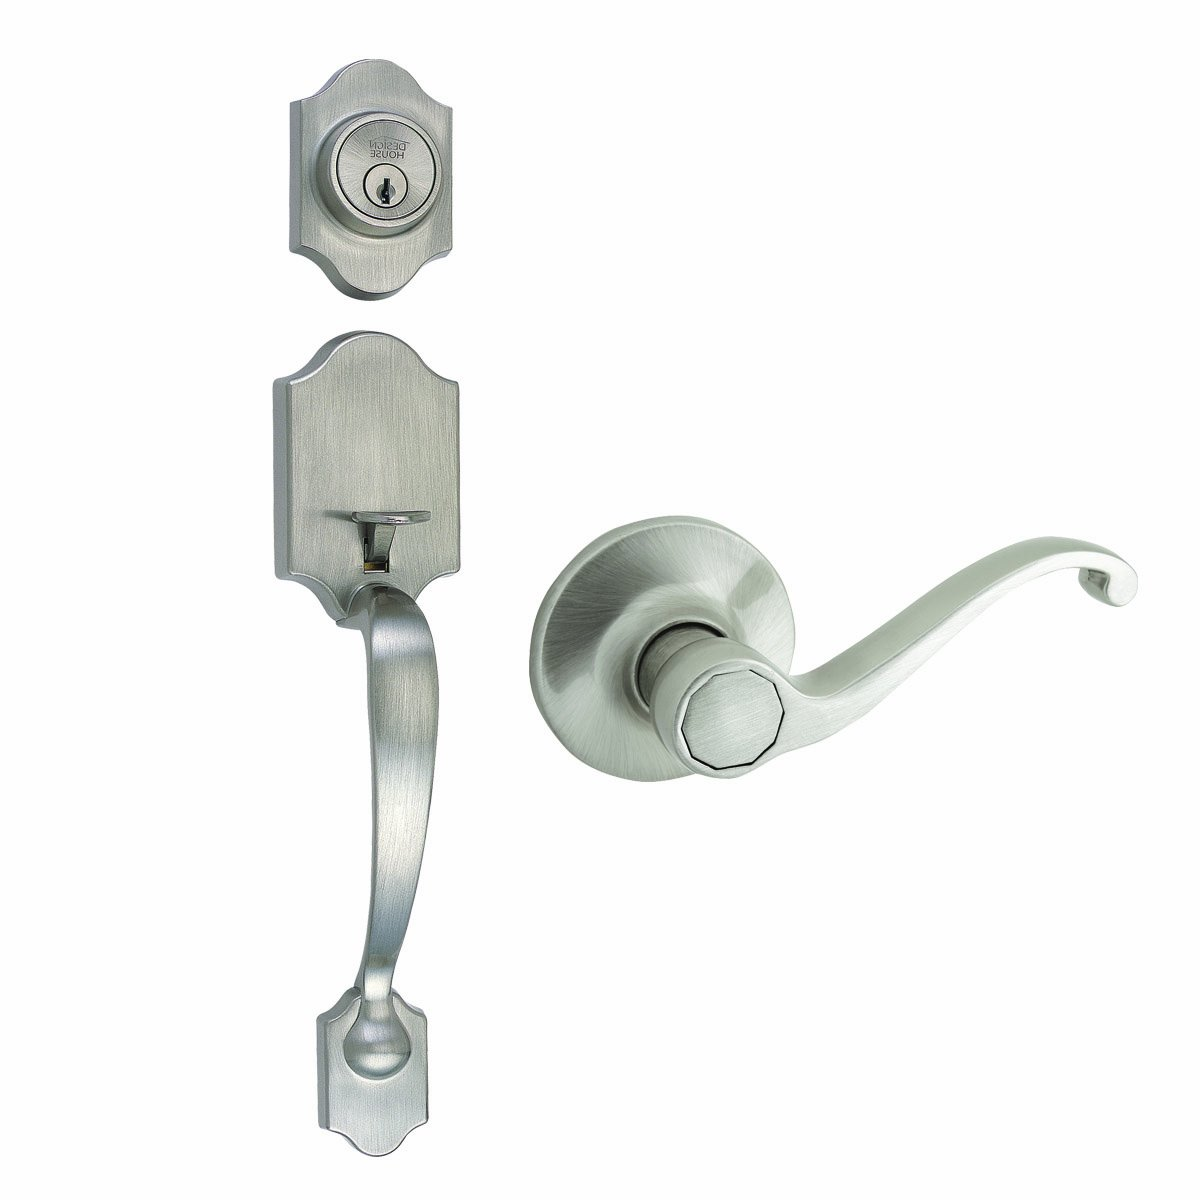 Design House 753772 Sussex 2-Way Adjustable Entry Door Handle Set with Lever, Satin Nickel